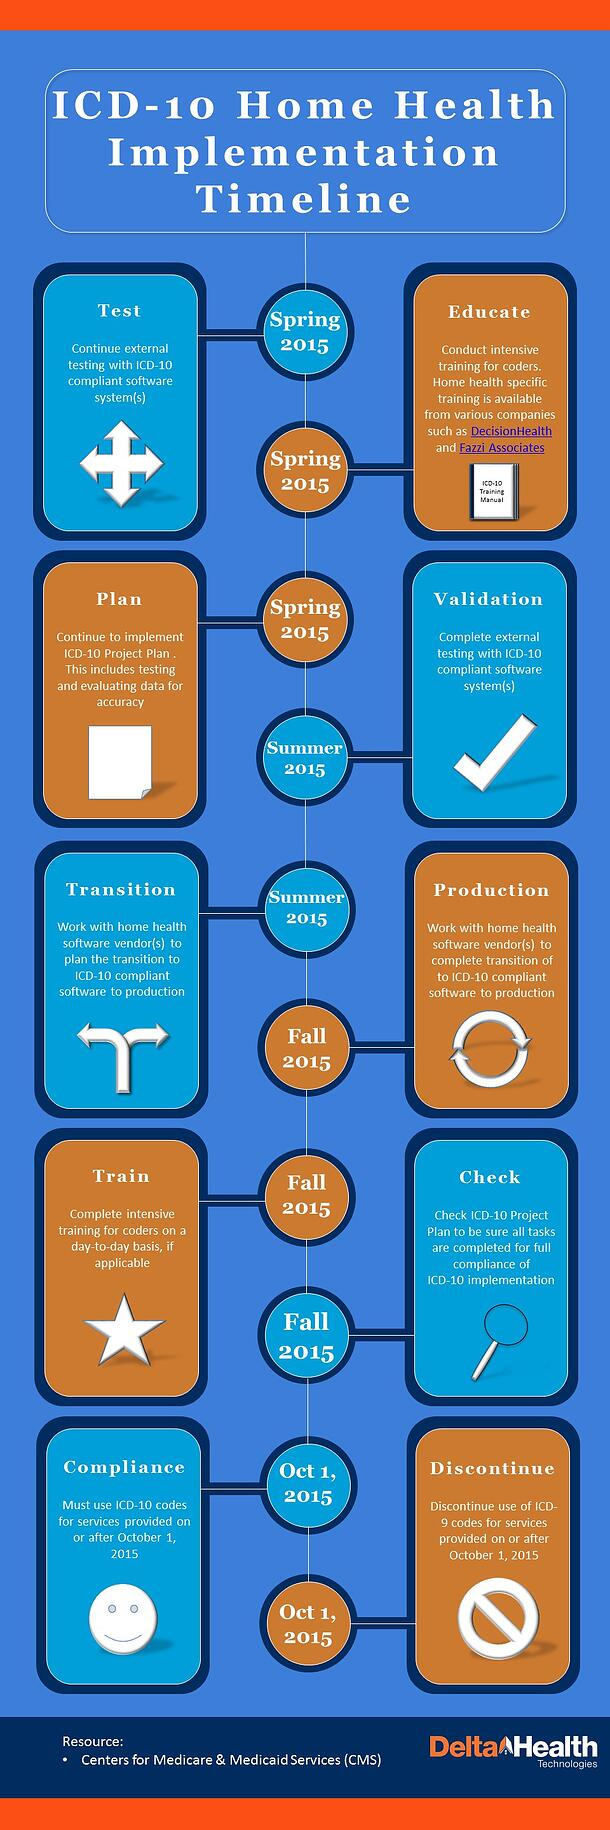 ICD-10_Timeline_for_Home_Health_Infographic